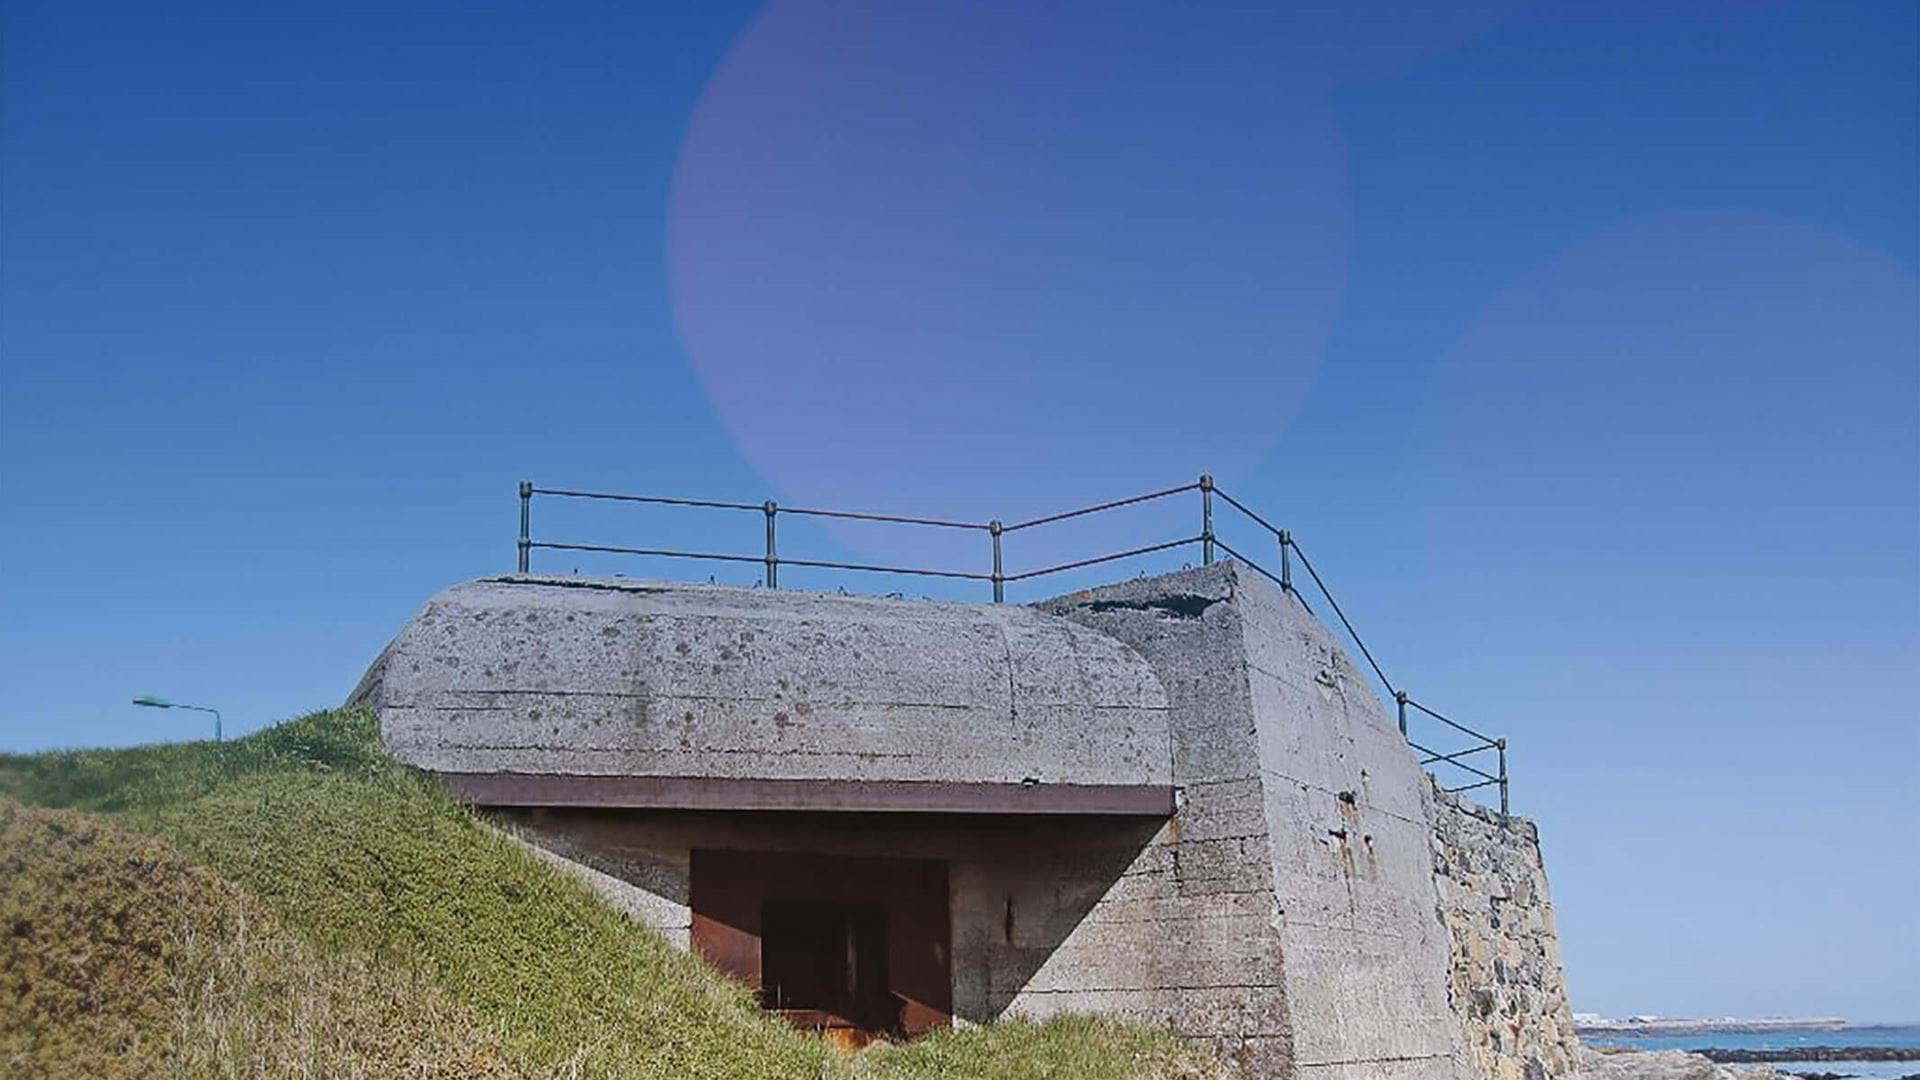 hot-source-audio-bunker-guernsey-channel-islands